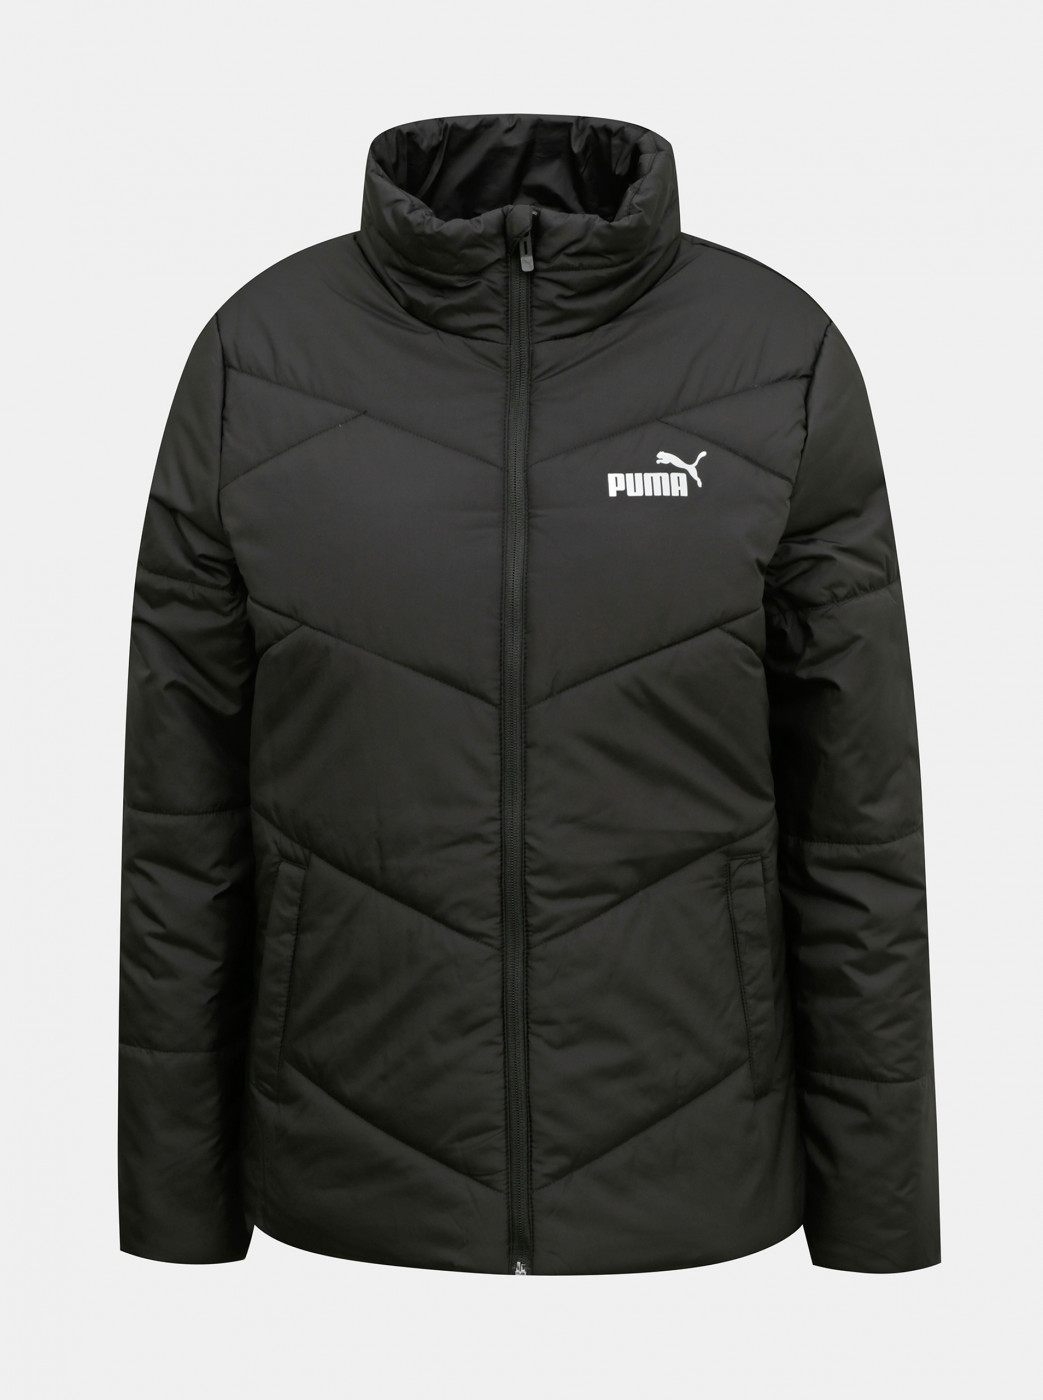 Puma Black Women's Quilted Winter Jacket